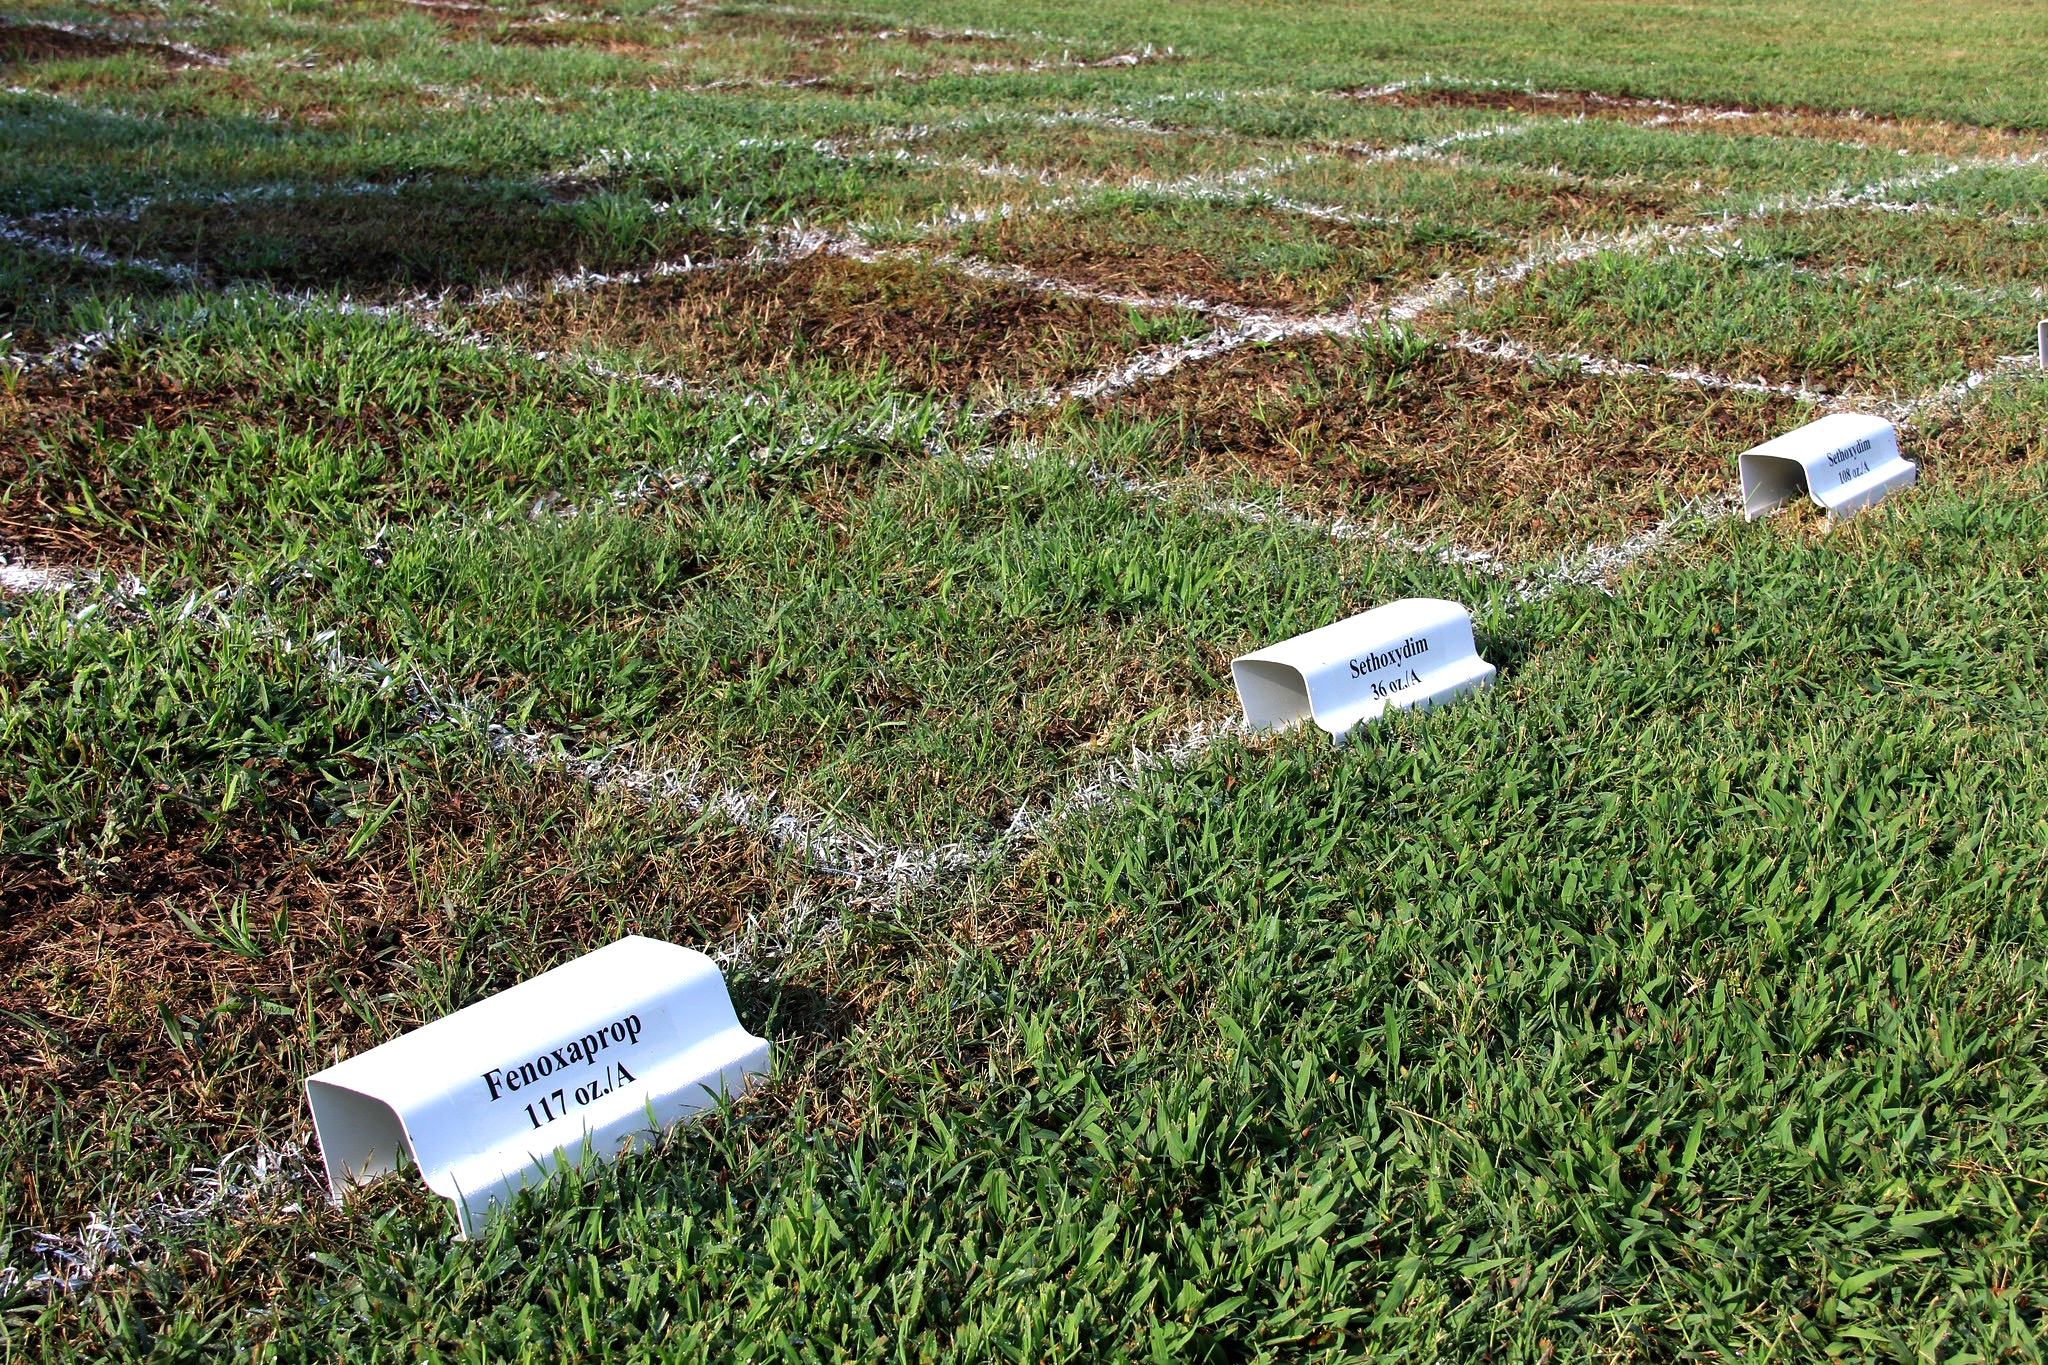 A herbicide trial on the turfgrass research plots at the University of Georgia campus in Griffin, Georgia.